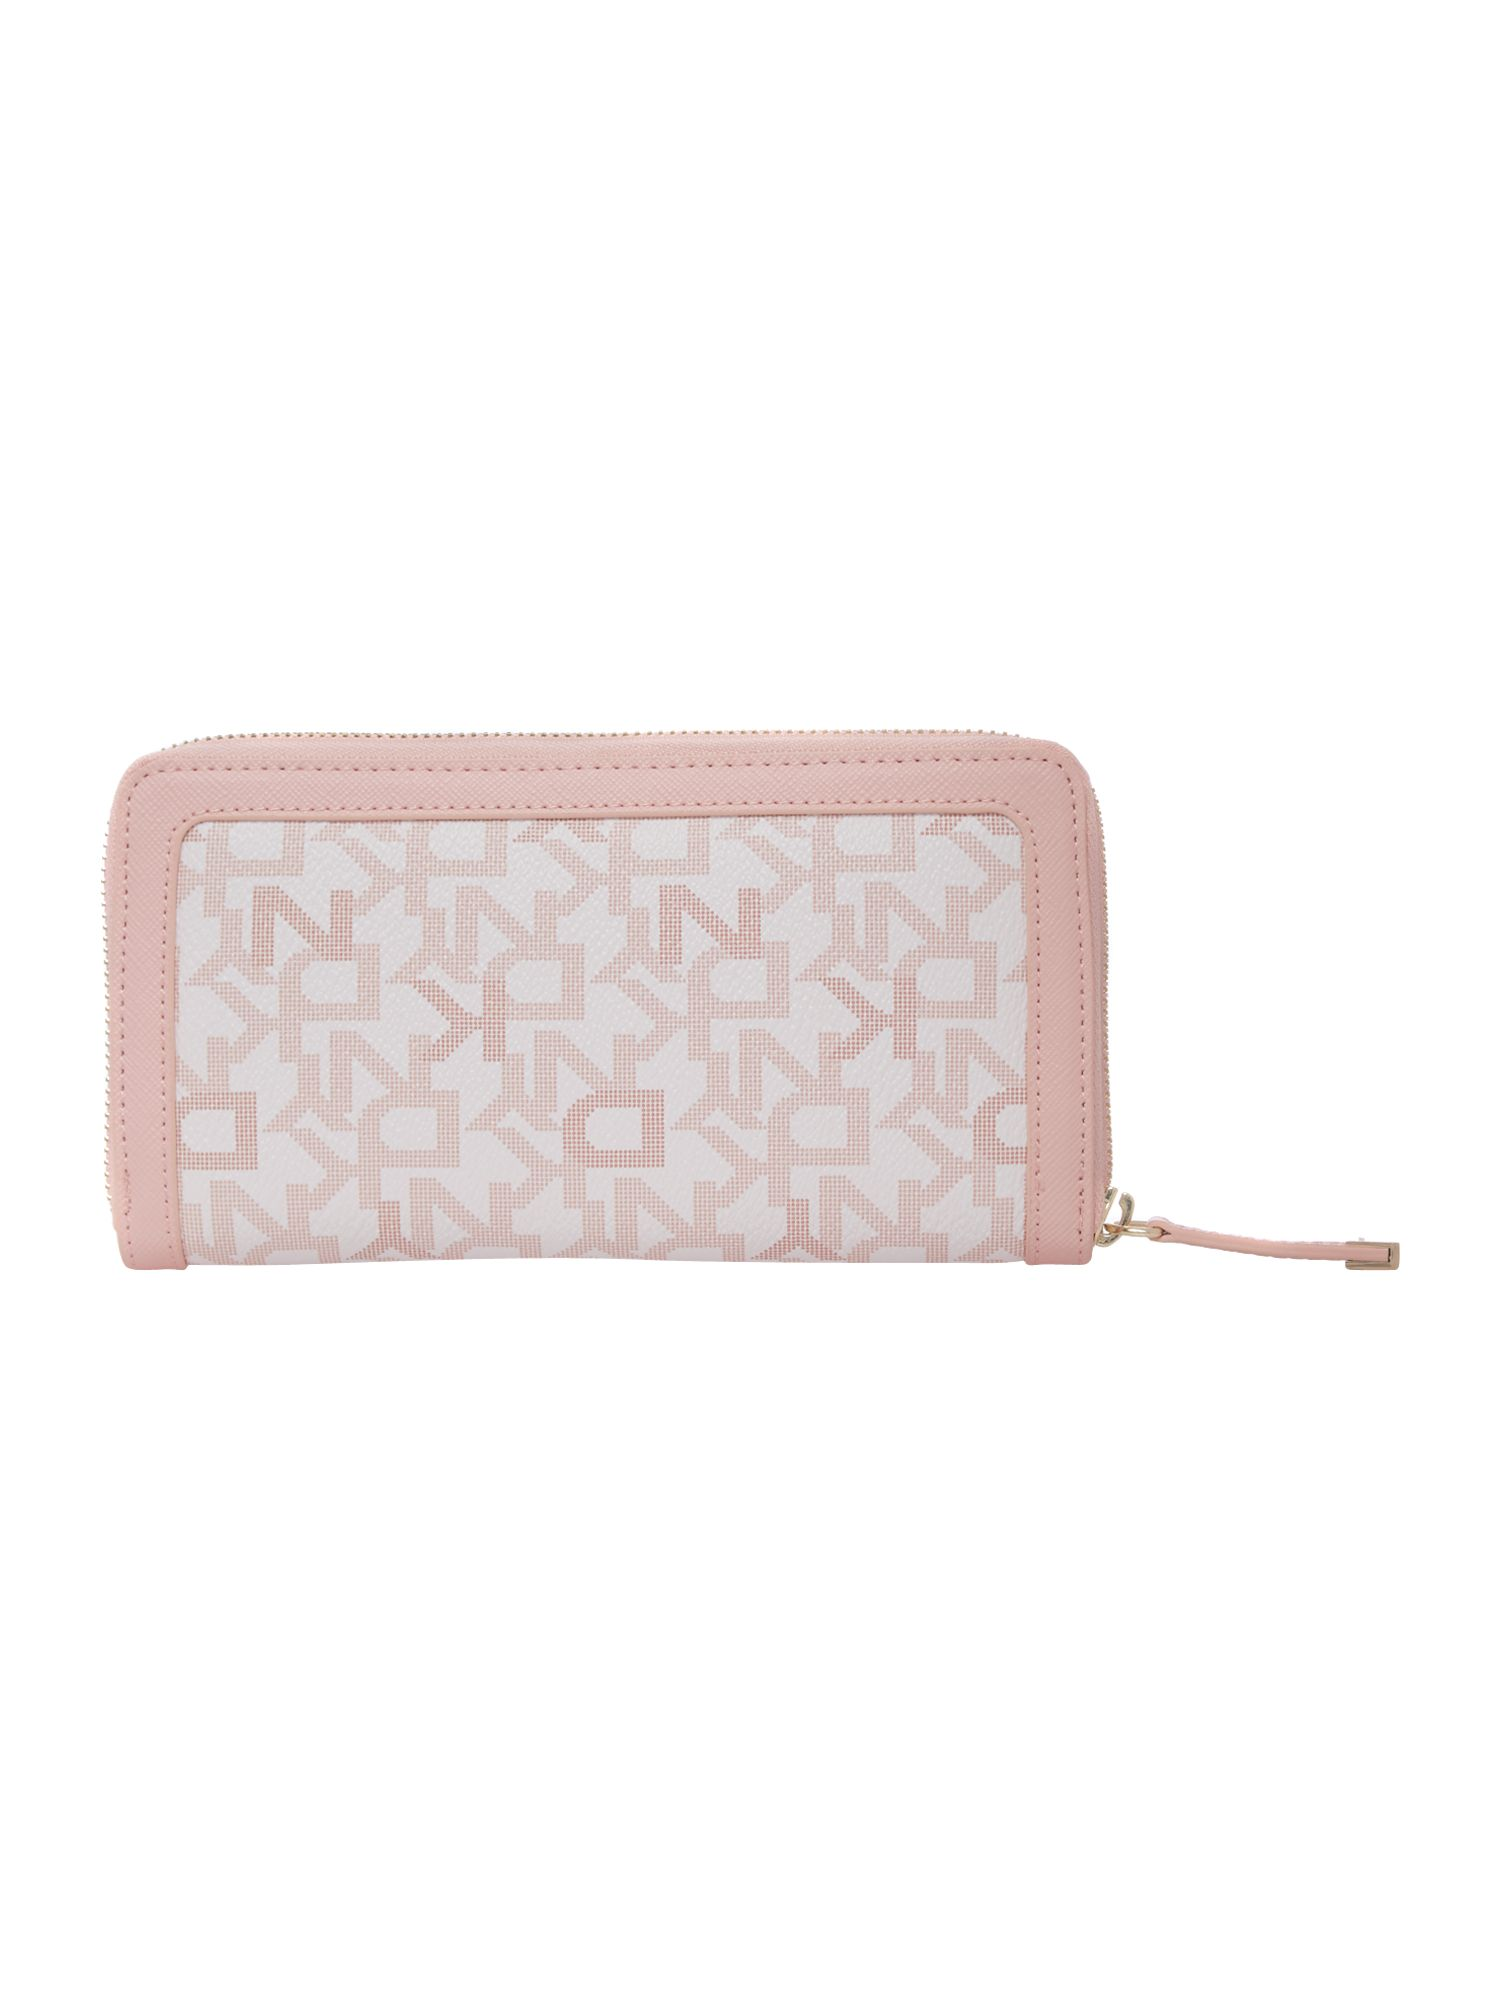 Coated logo pink large zip around purse